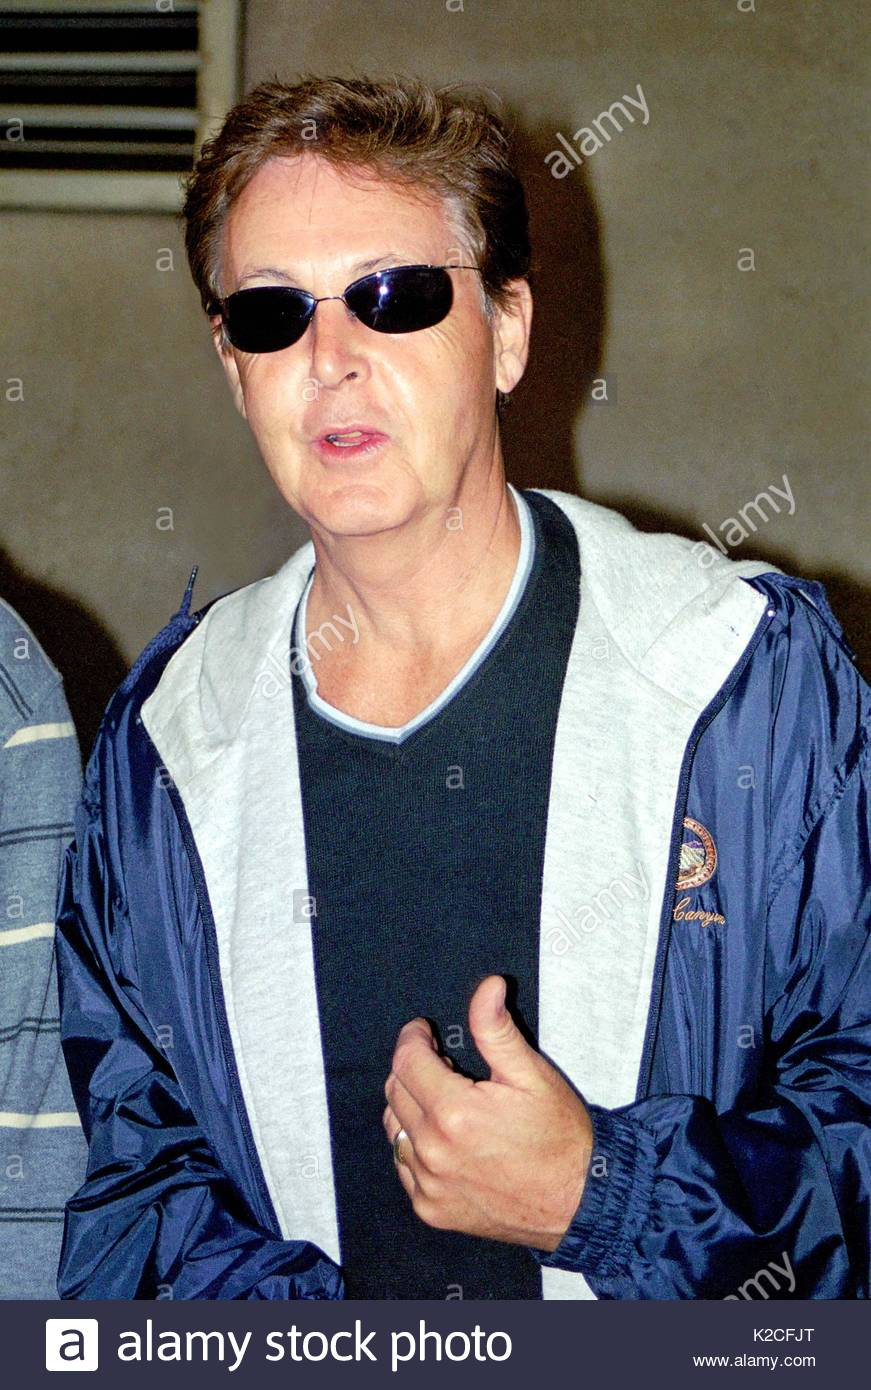 Paul In 2001 McCartney Exits The Plaza Athenee Hotel NYC 1993 And WPLJ Radio Studios On September 21